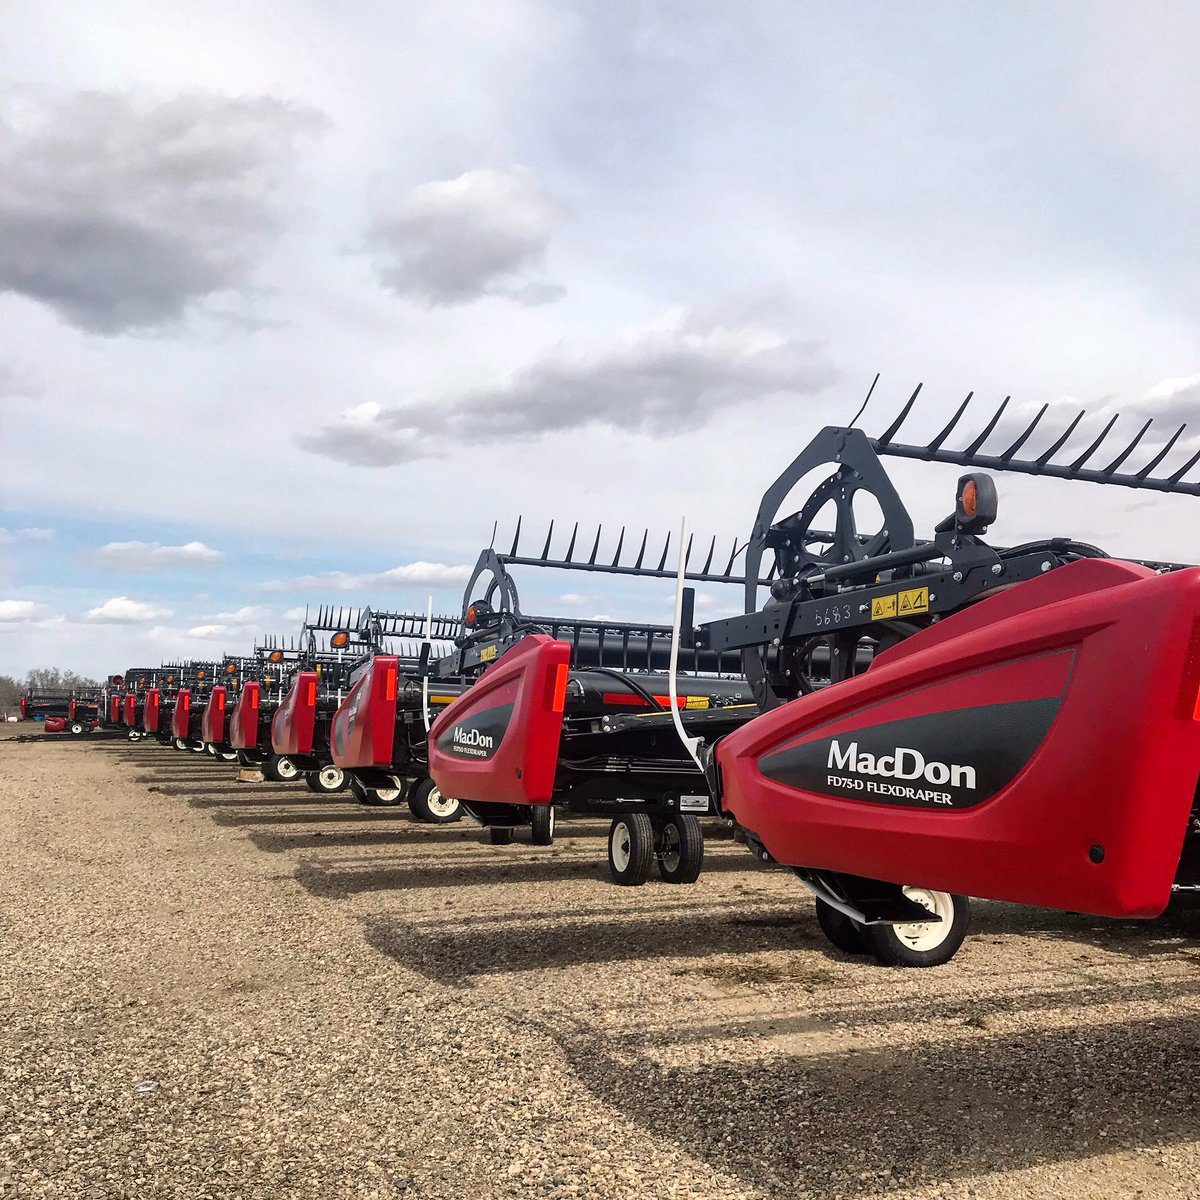 The Harvesting Specialist | MacDon Performance Parts